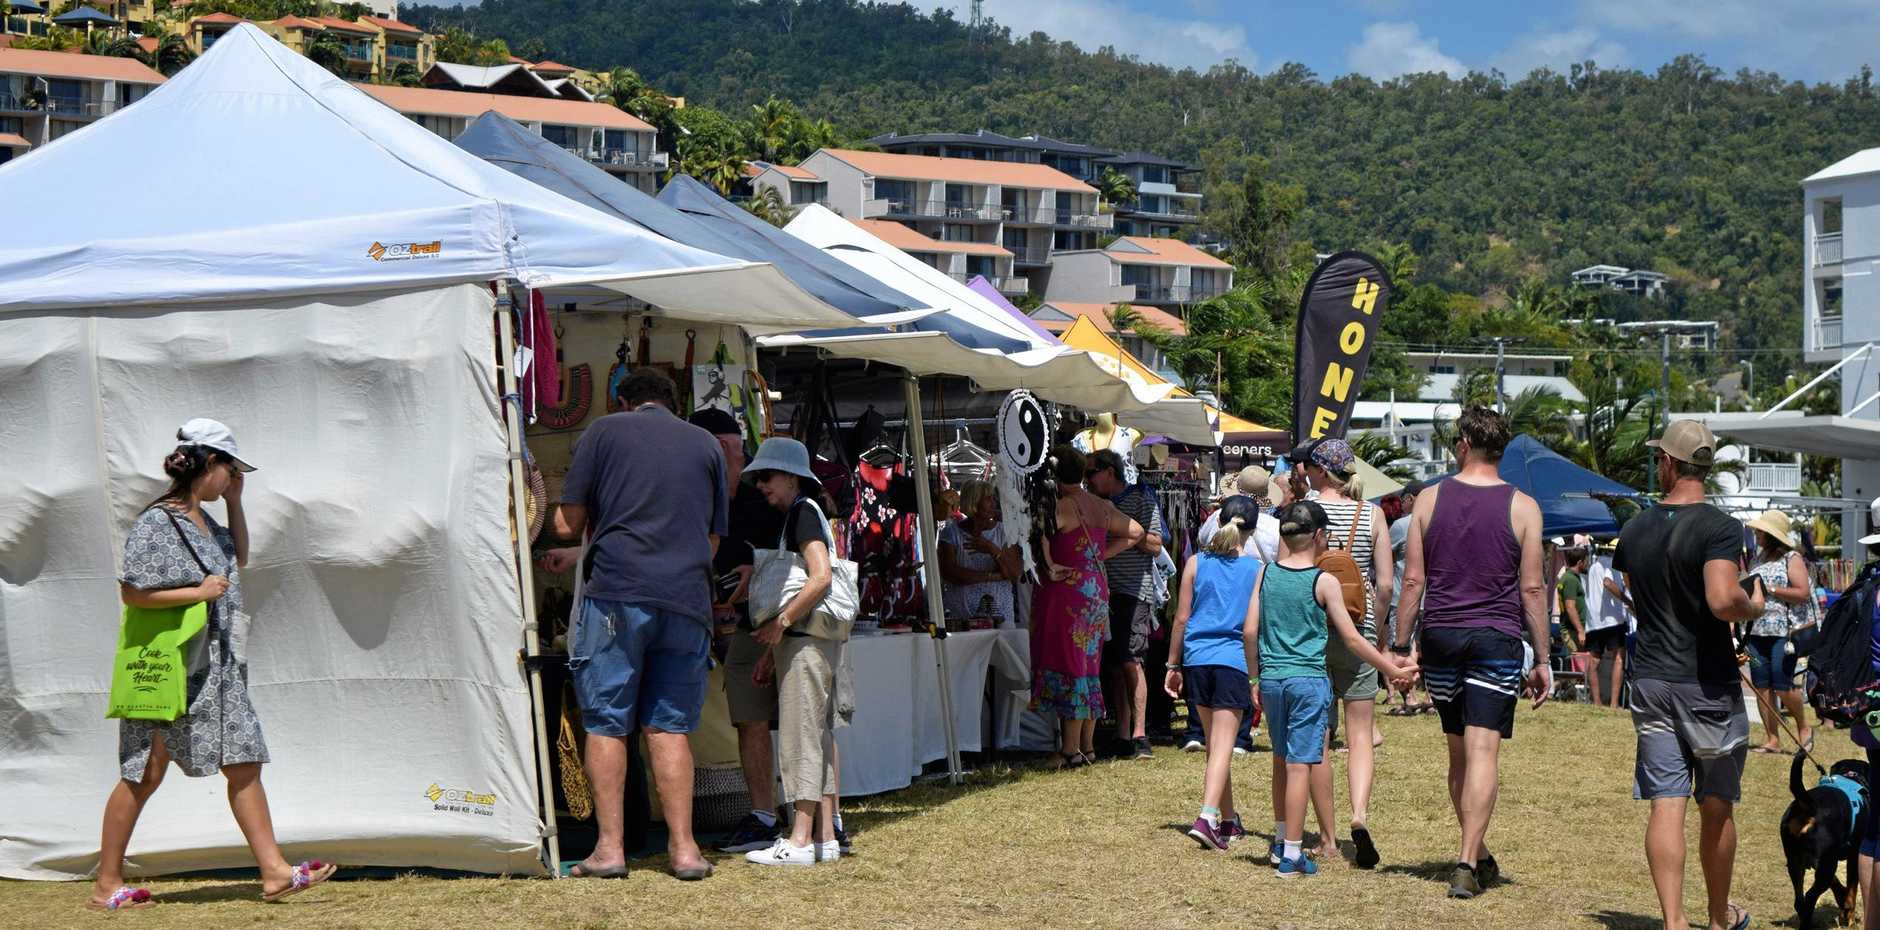 The Lions Airlie Beach Community Markets will have to remain at the Coconut Grove site for longer as top-dressing is needed on the grass at the foreshore before the markets can move back there.